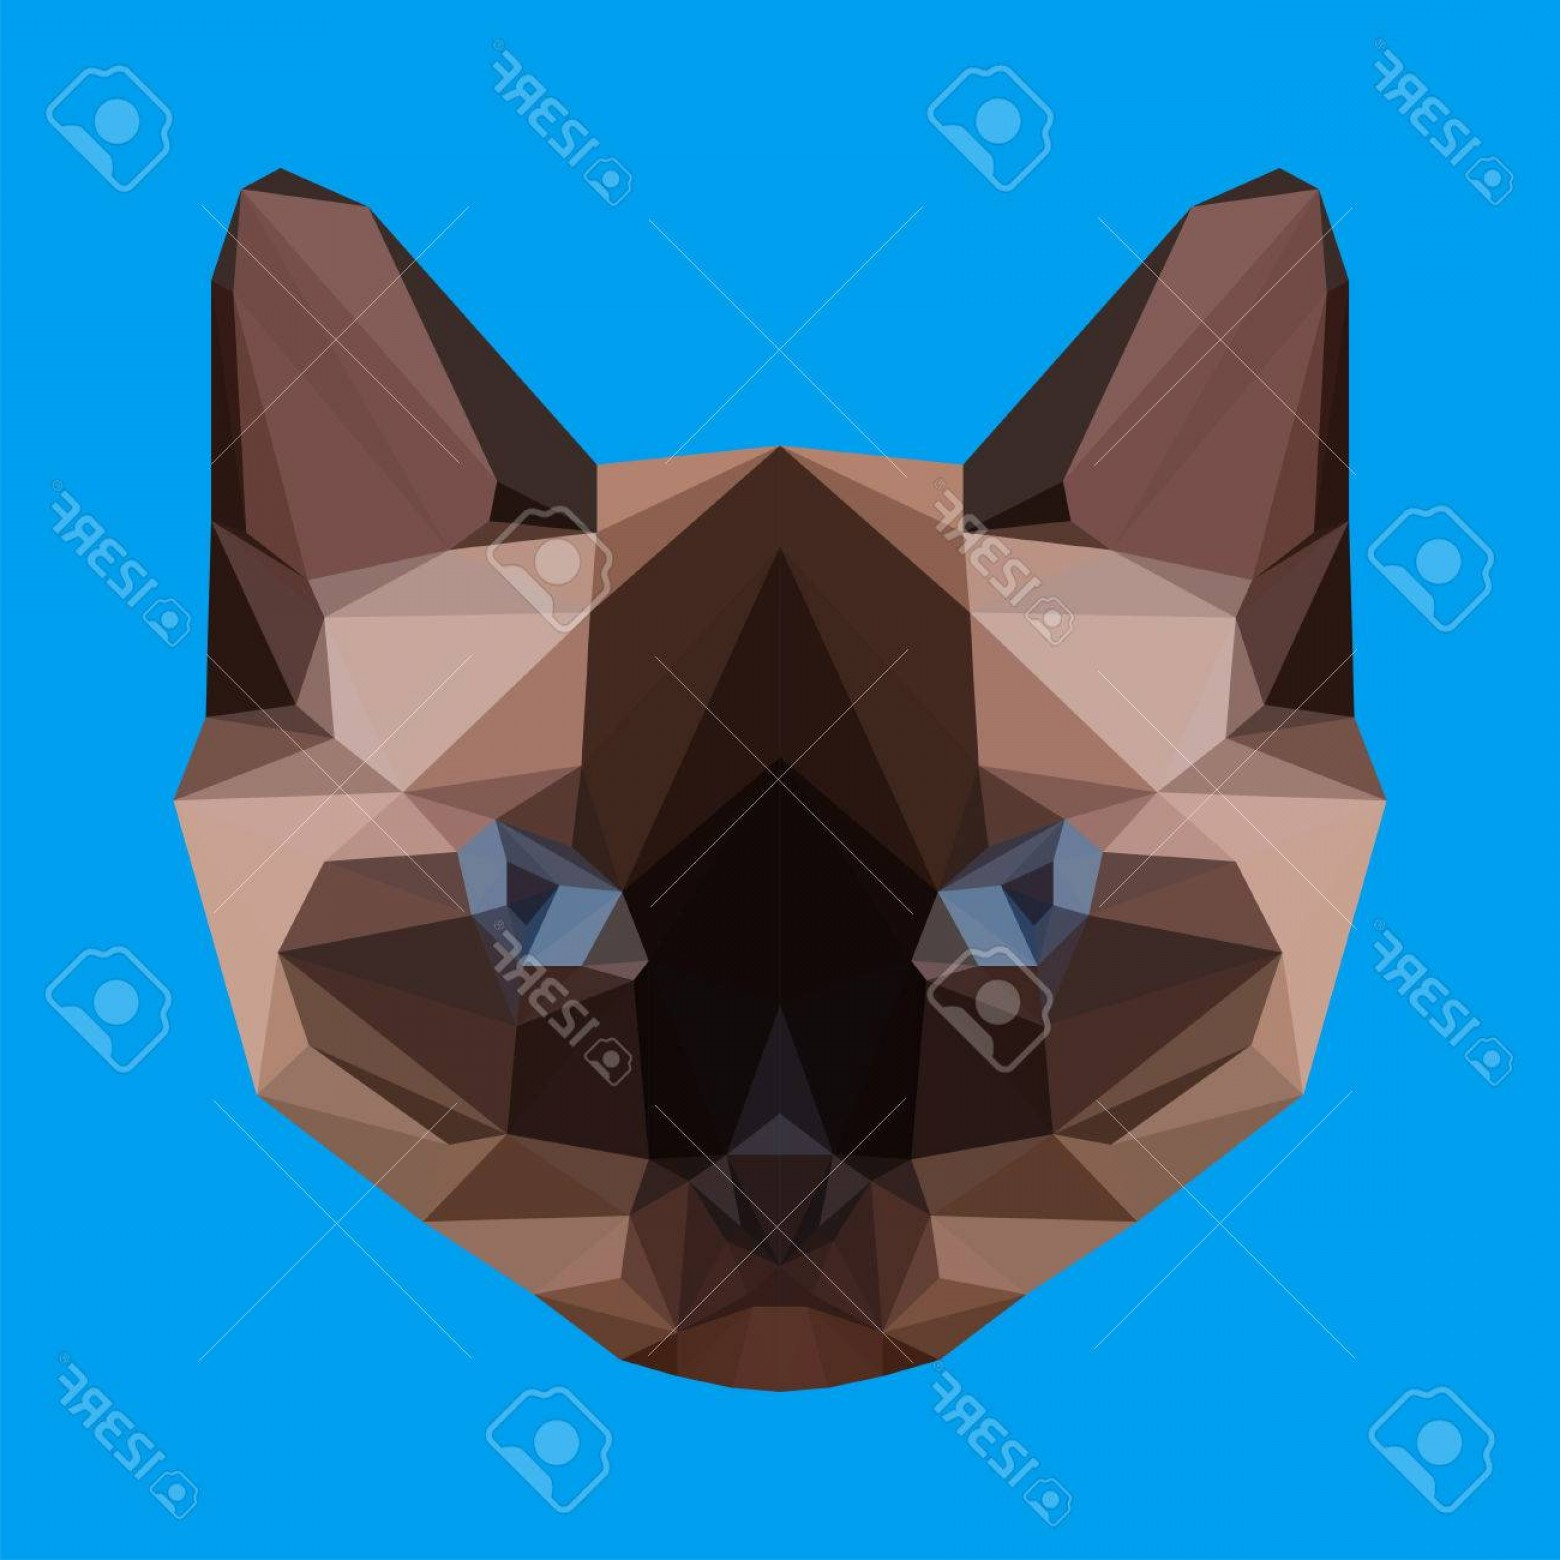 Siamese Cat Vector Transparent Background: Photostock Vector Abstract Geometric Polygonal Siamese Cat Vector Background For Use In Design For Card Invitation Pos